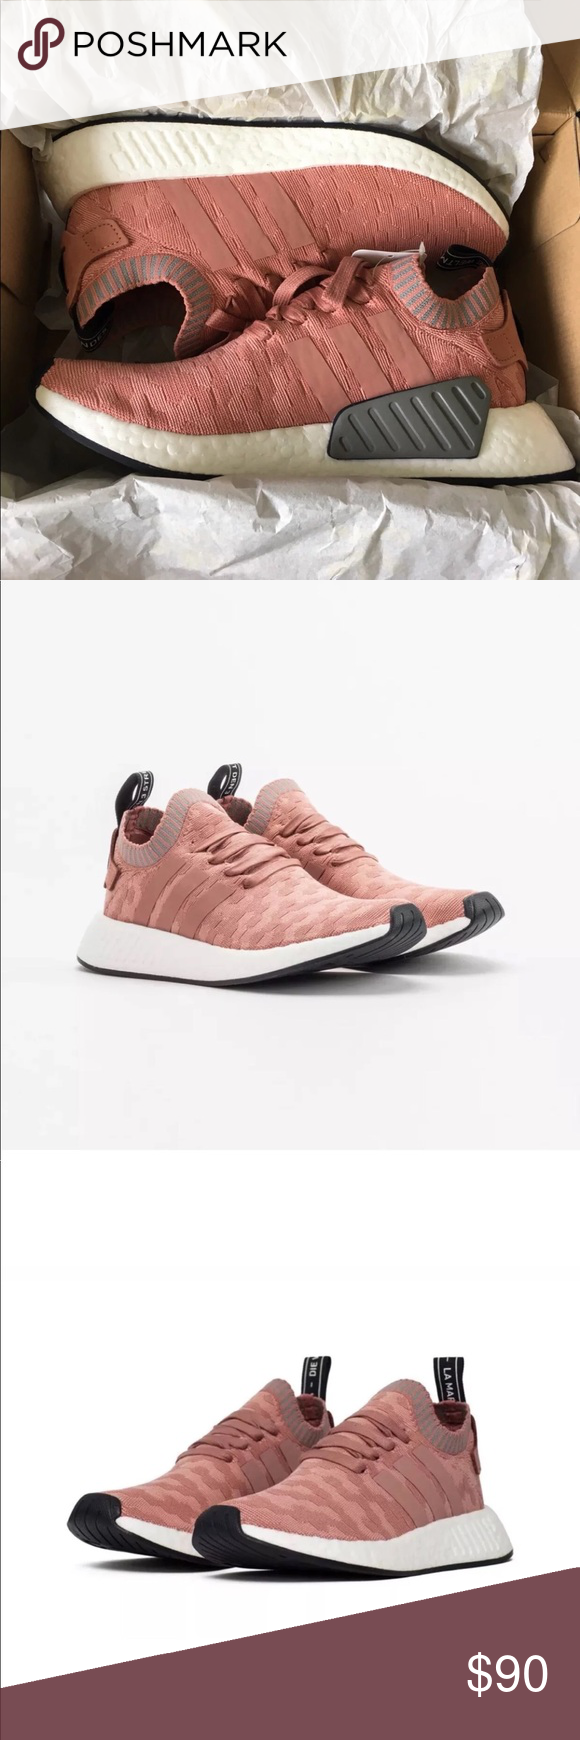 2499fa5fd Adidas NMD R2 Women s running shoes BY8782 Women s size 7.5